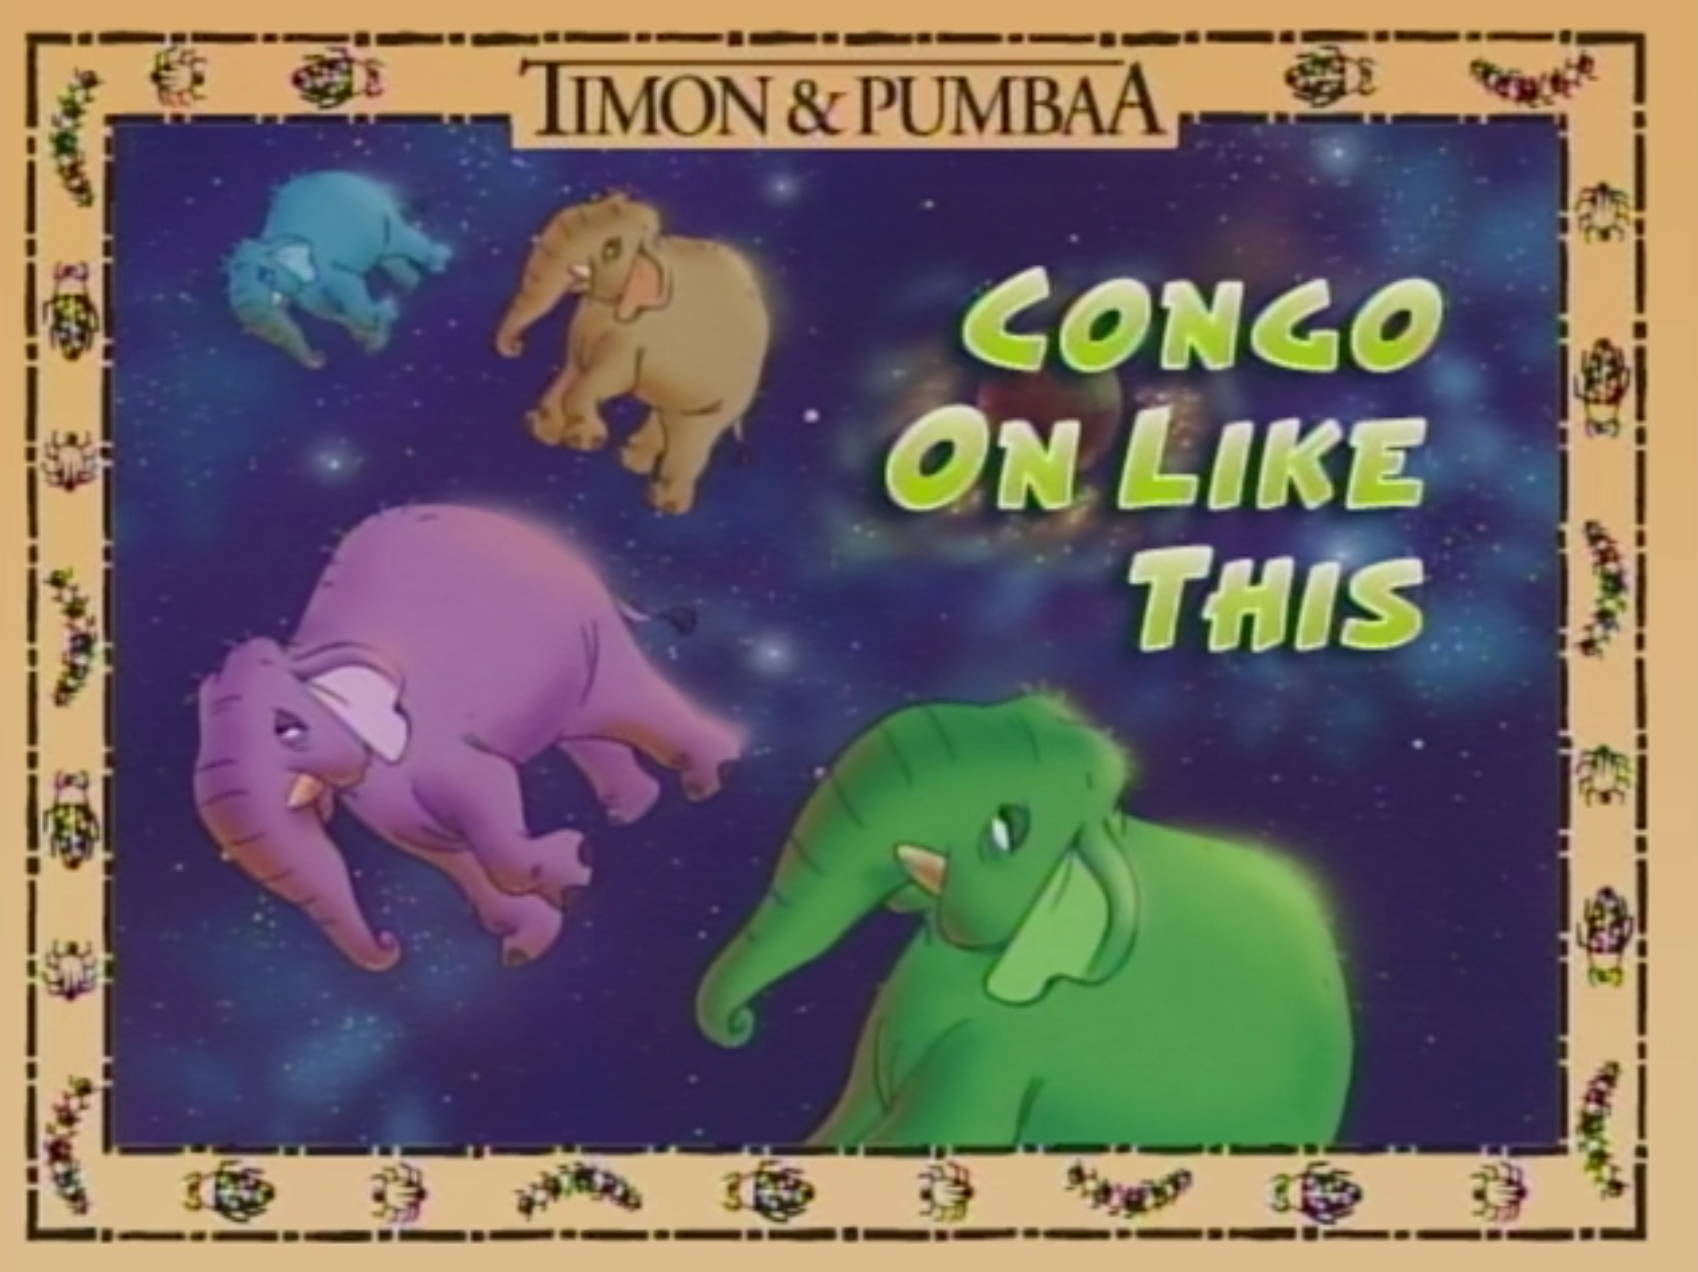 Congo on Like This